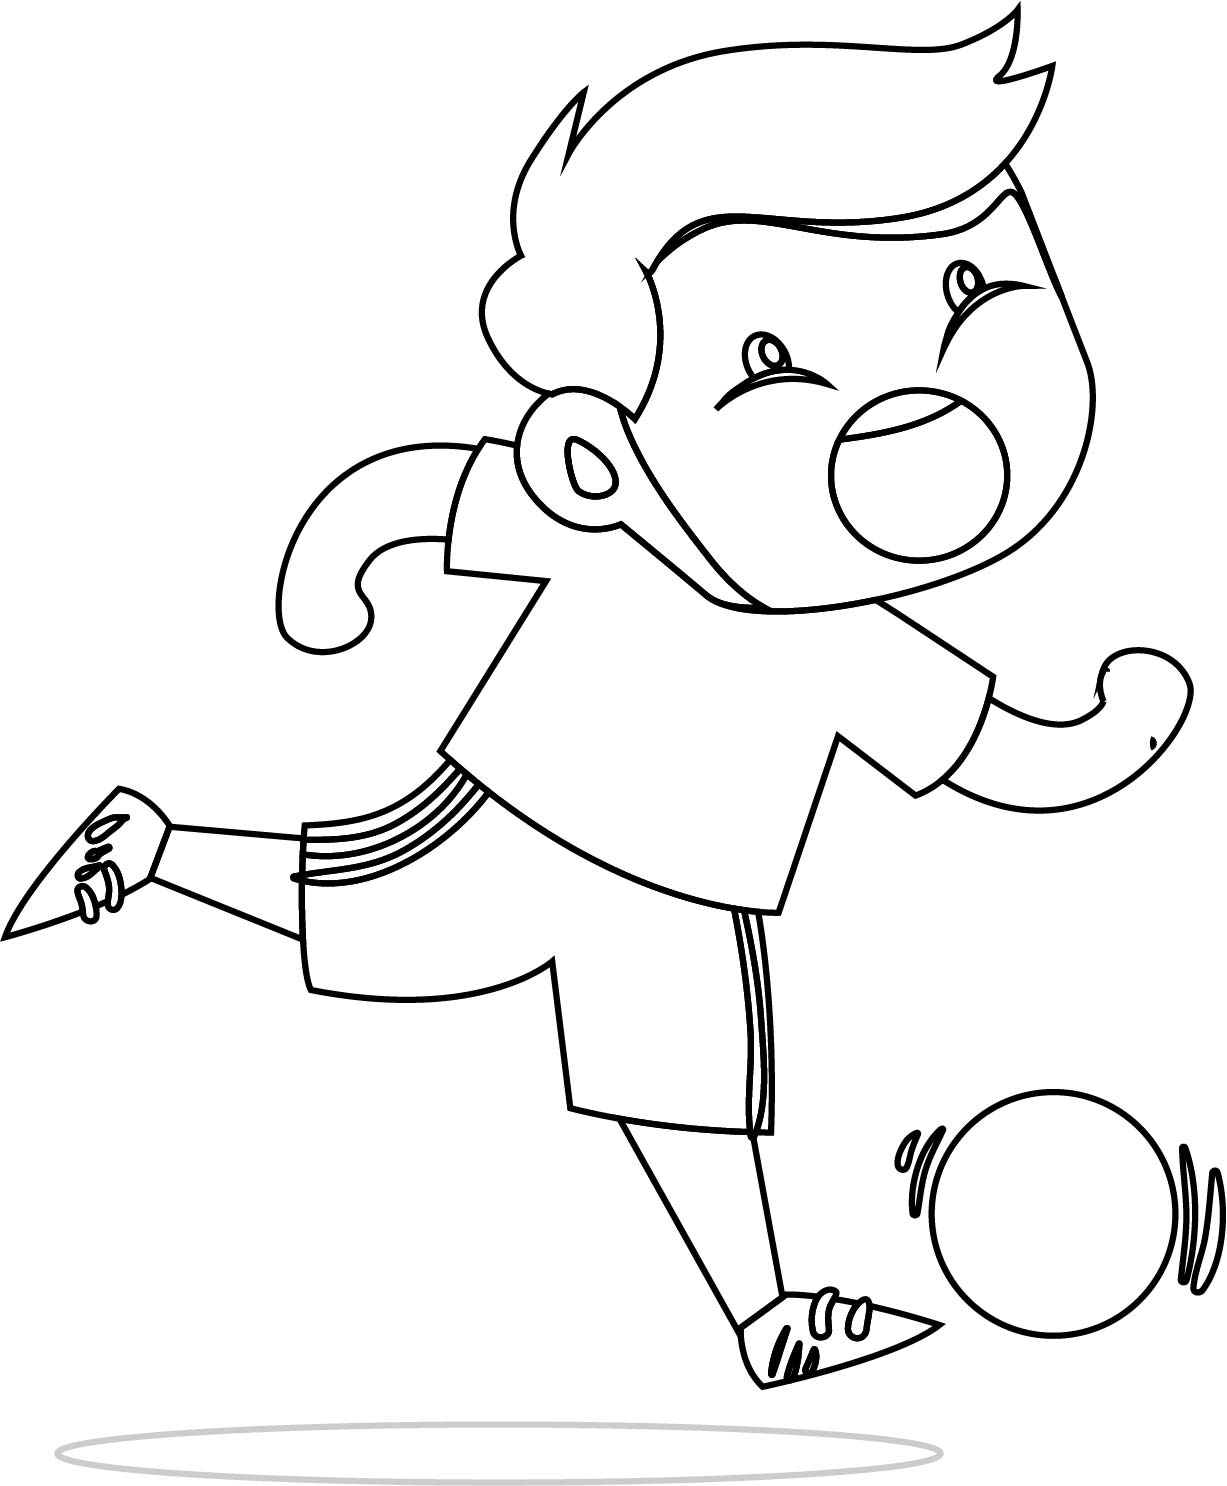 Children Playing Ball Coloring Page